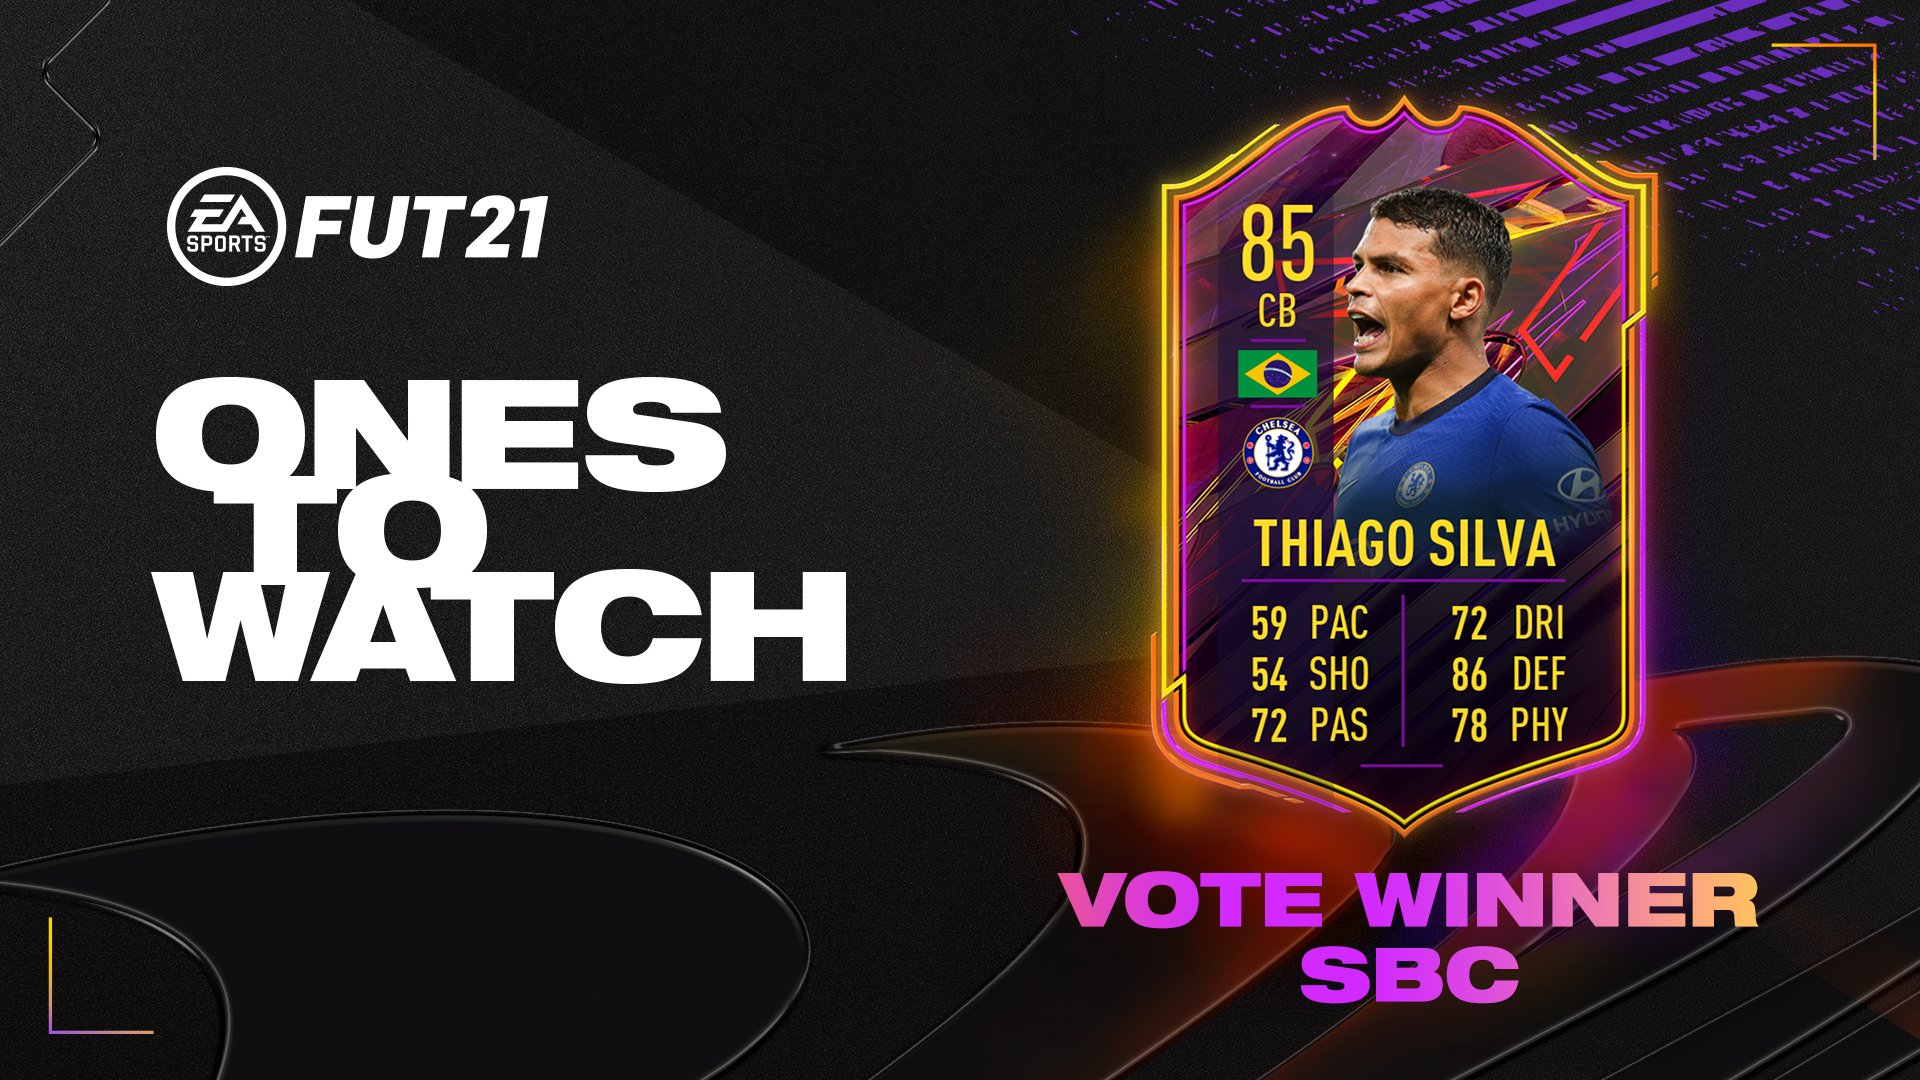 Thiago Silva Ones to Watch